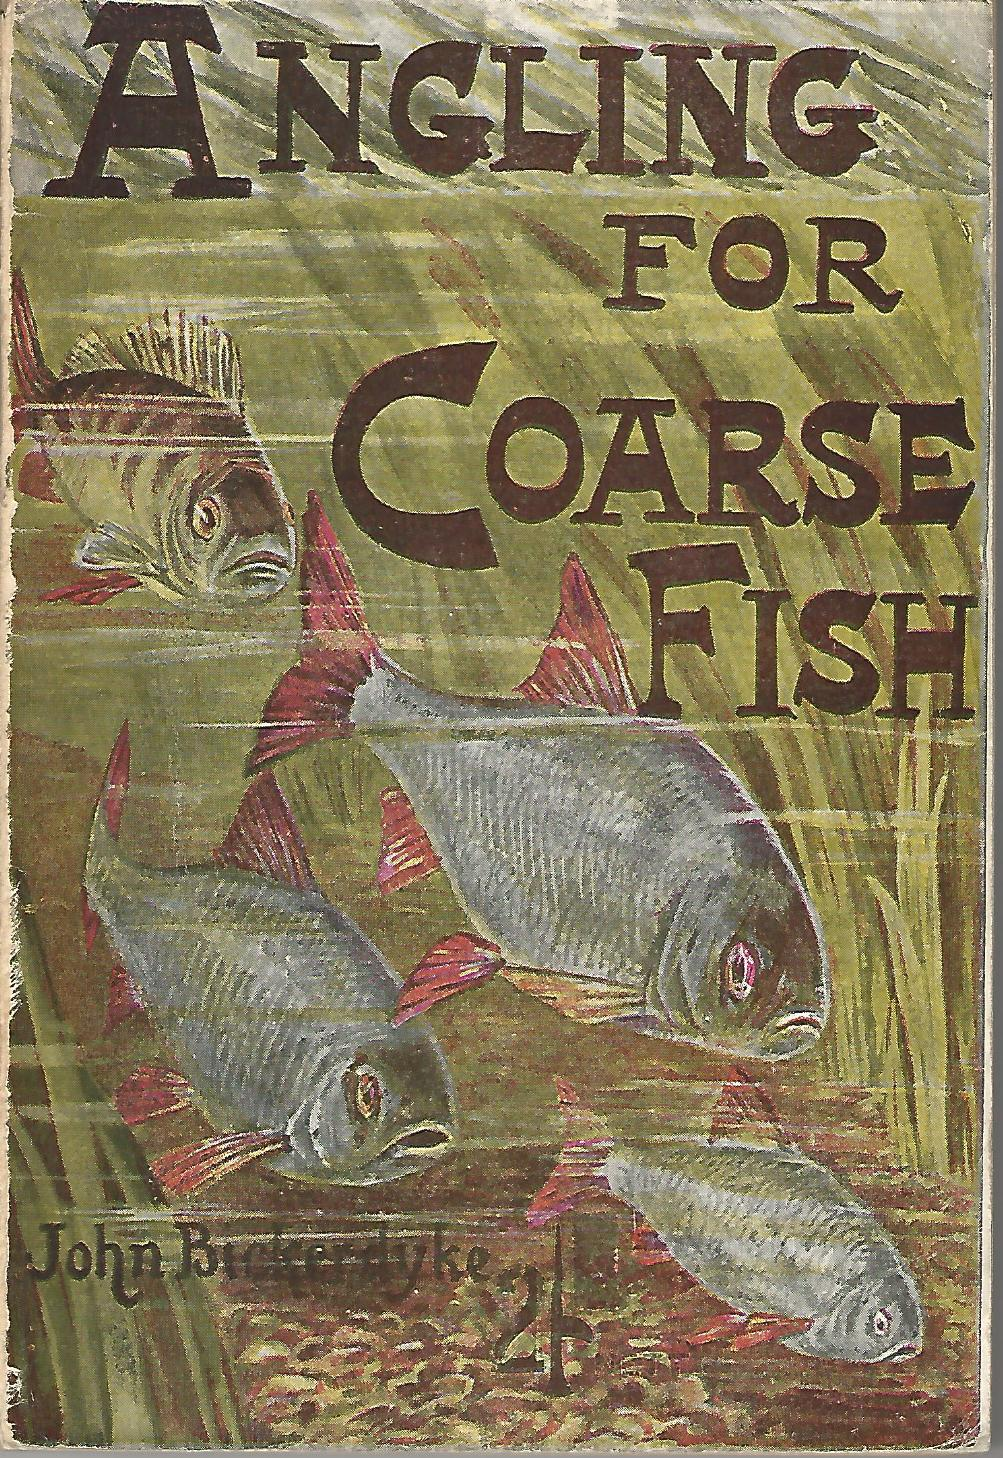 Image for Angling For Coarse Fish: A Practical Work on Fishing for Roach, Perch, Barbel, Chub, Dace, Carp, Eels &c., according to the most Modern Methods in use on the Thames, Trent, Norfolk Broads, in the Midlands, The Fens and Elsewhere.